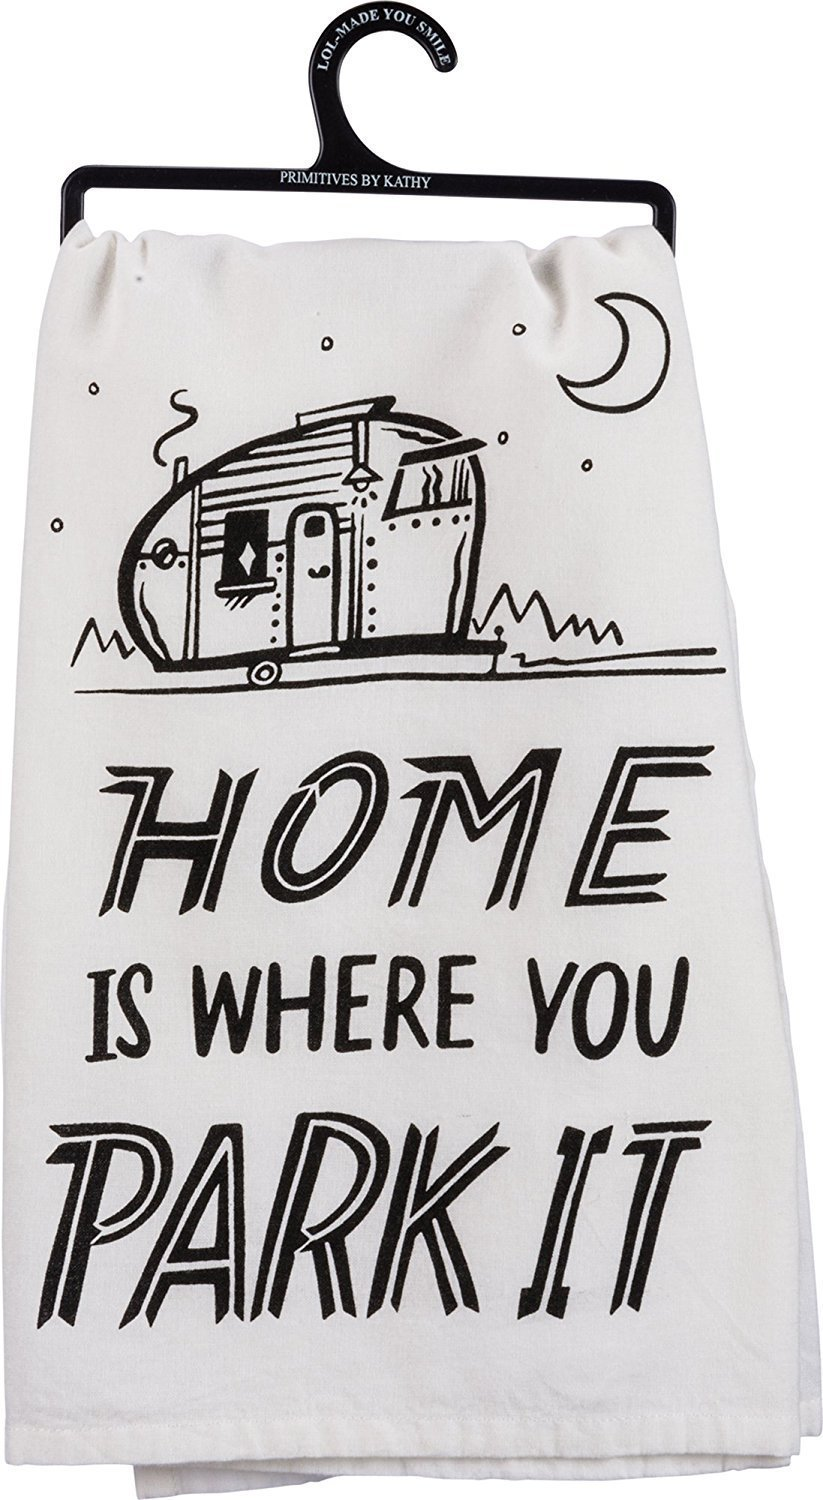 Home Is Where You Park It Towel made our list of DIY Glam Camping Ideas And Tips And Cute Glamping Accessories For Do It Yourself RV And Tent Glamping, Glamping Gifts, Fun Gear And Gifts For Glampers, Awesome Decor, Furniture, Lights, Decorations, Camping Hacks And Products To Add To Your DIY Glamping Kit